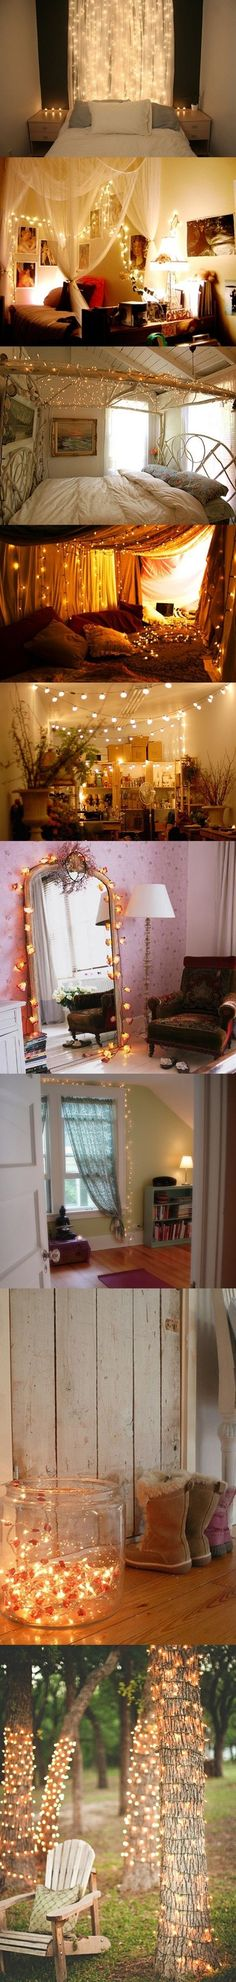 i love twinkly lights! Especially love the first three rooms